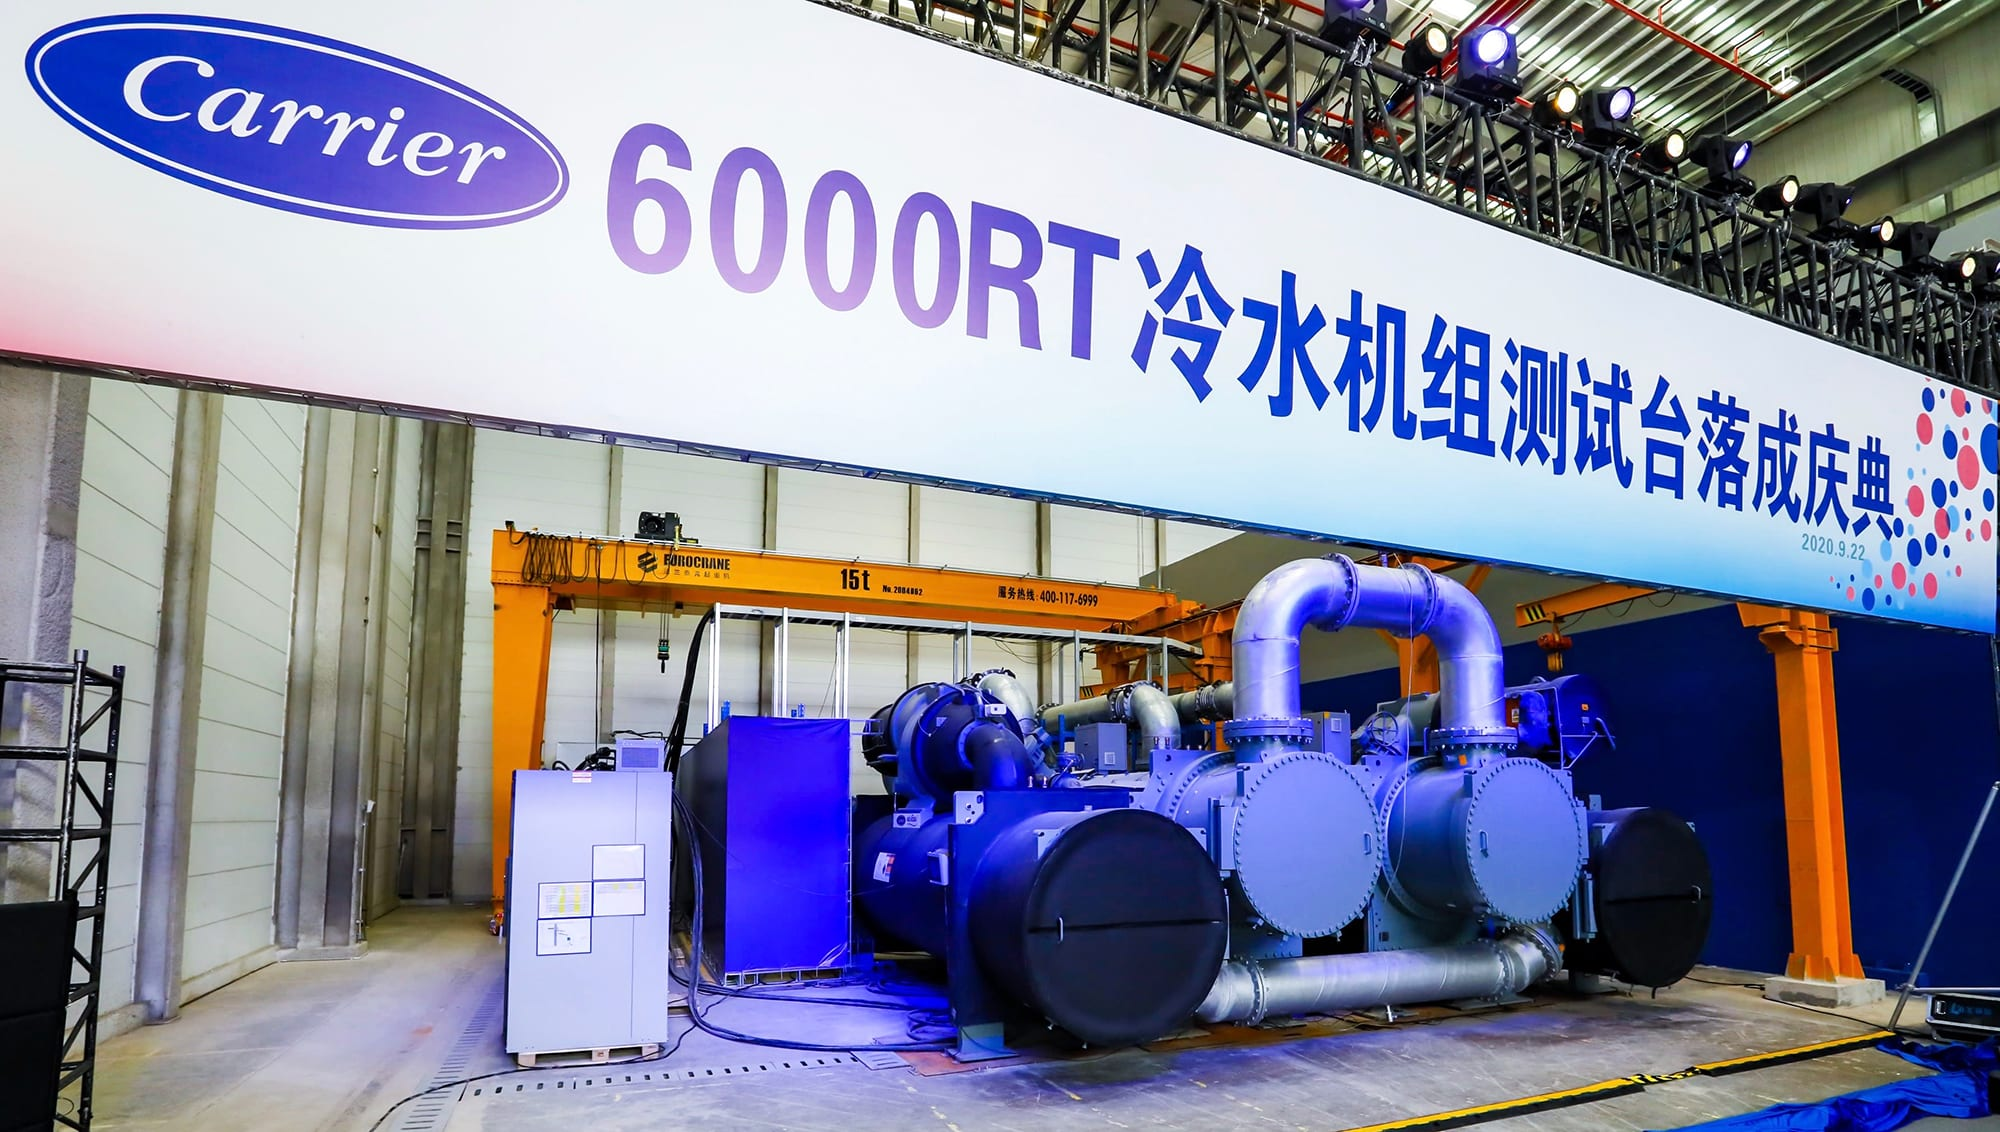 Official launch of the 6000RT Chiller test platform